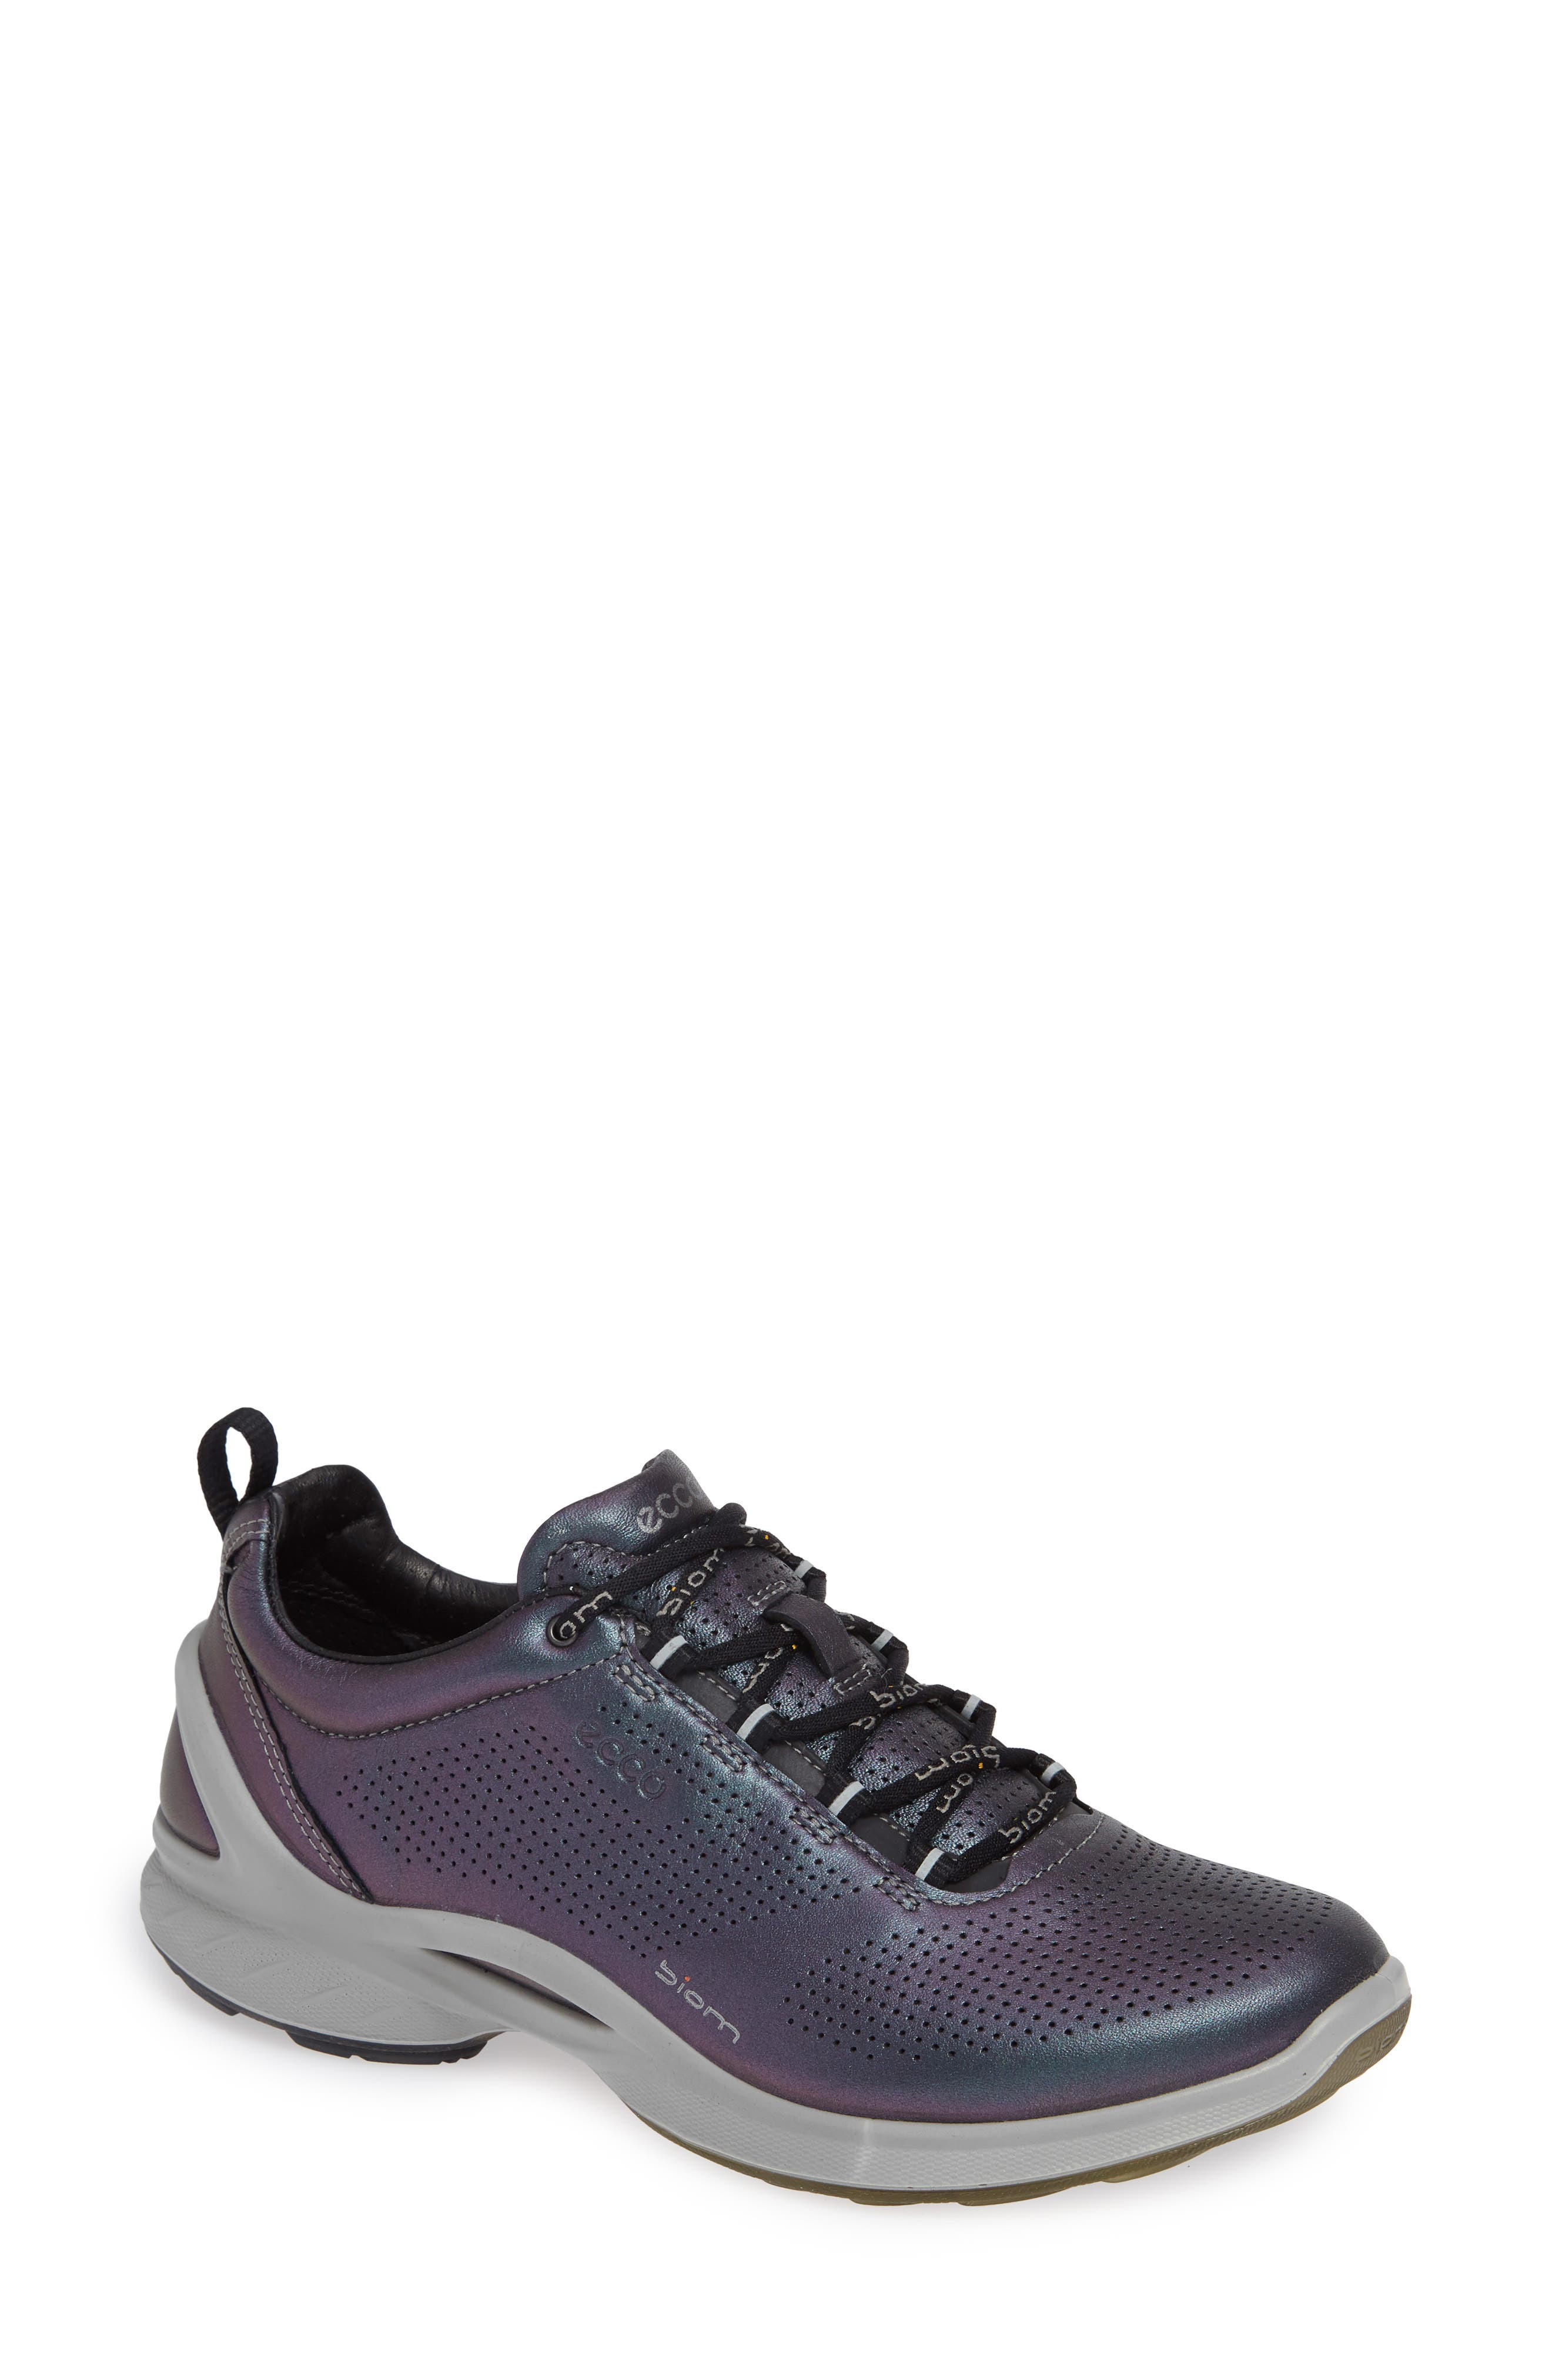 'Biom Fjuel' Sneaker,                         Main,                         color, Iridescent Leather